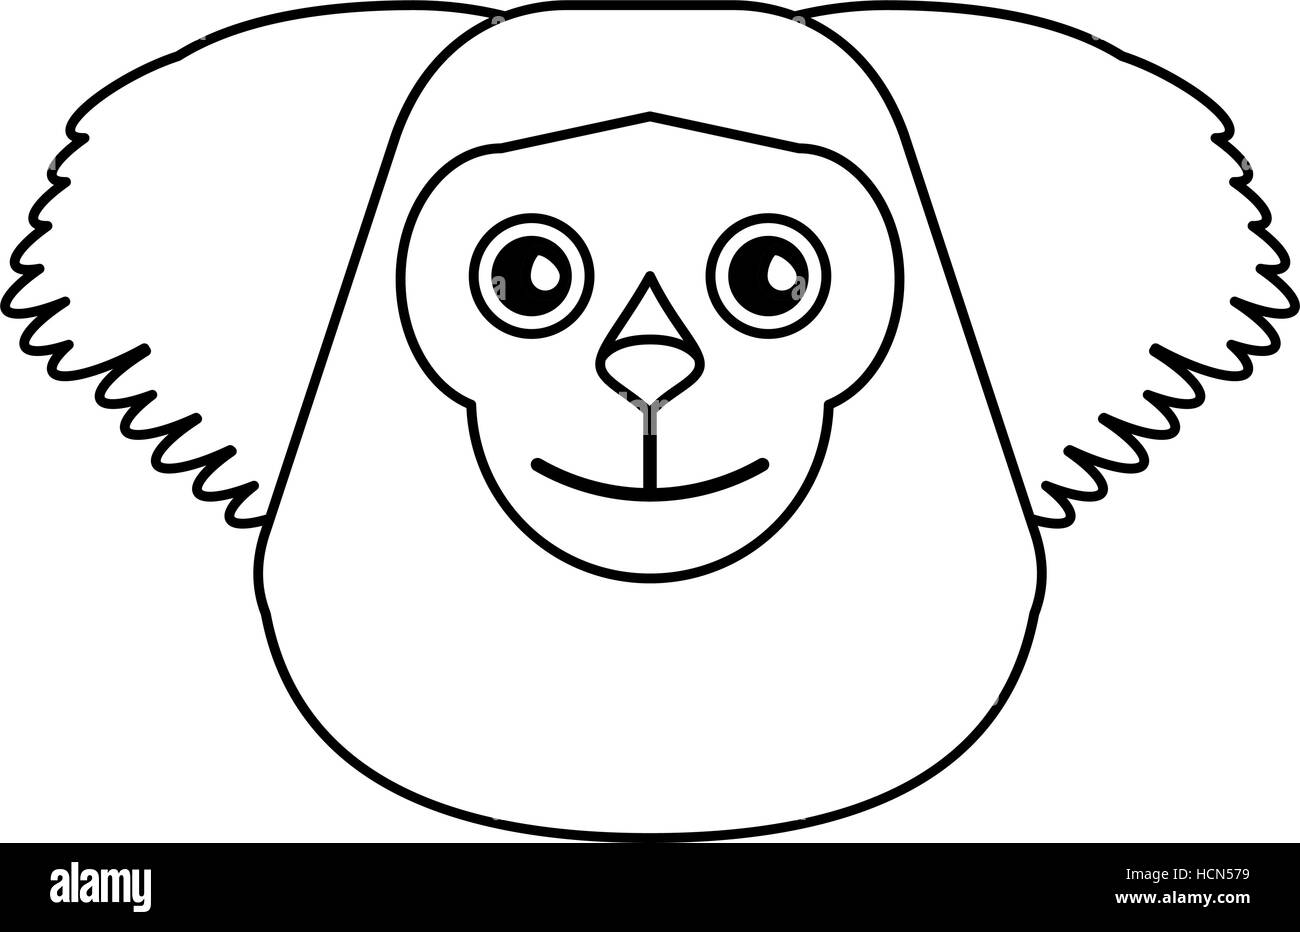 black bearded saki animal brazil outline - Stock Image